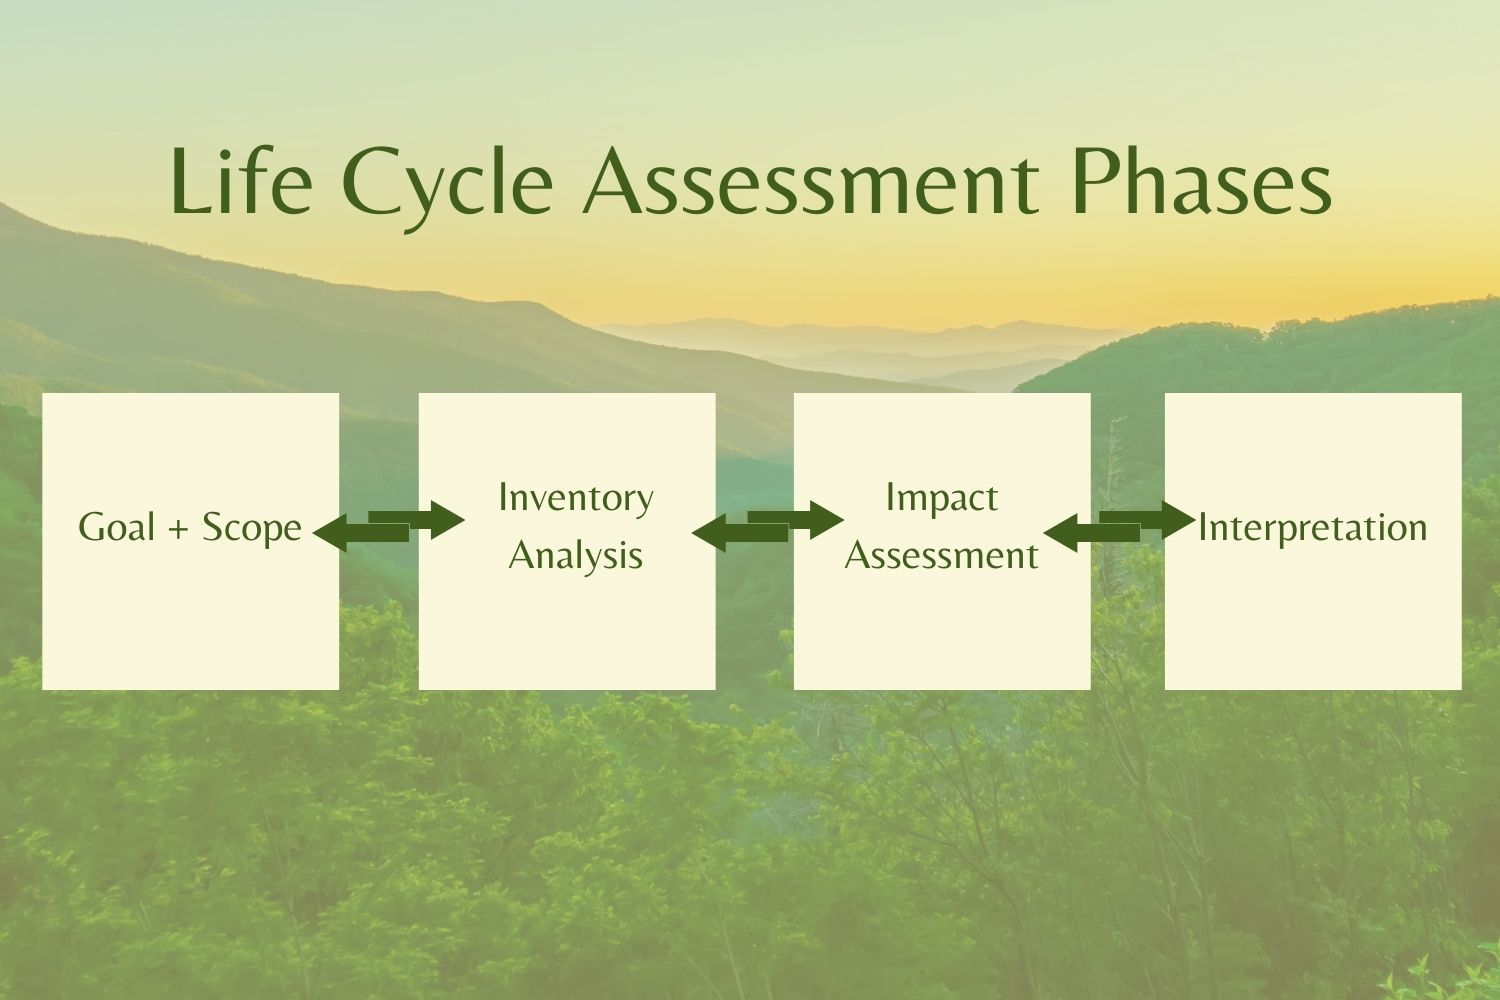 Info graphic of life cycle assessment phases